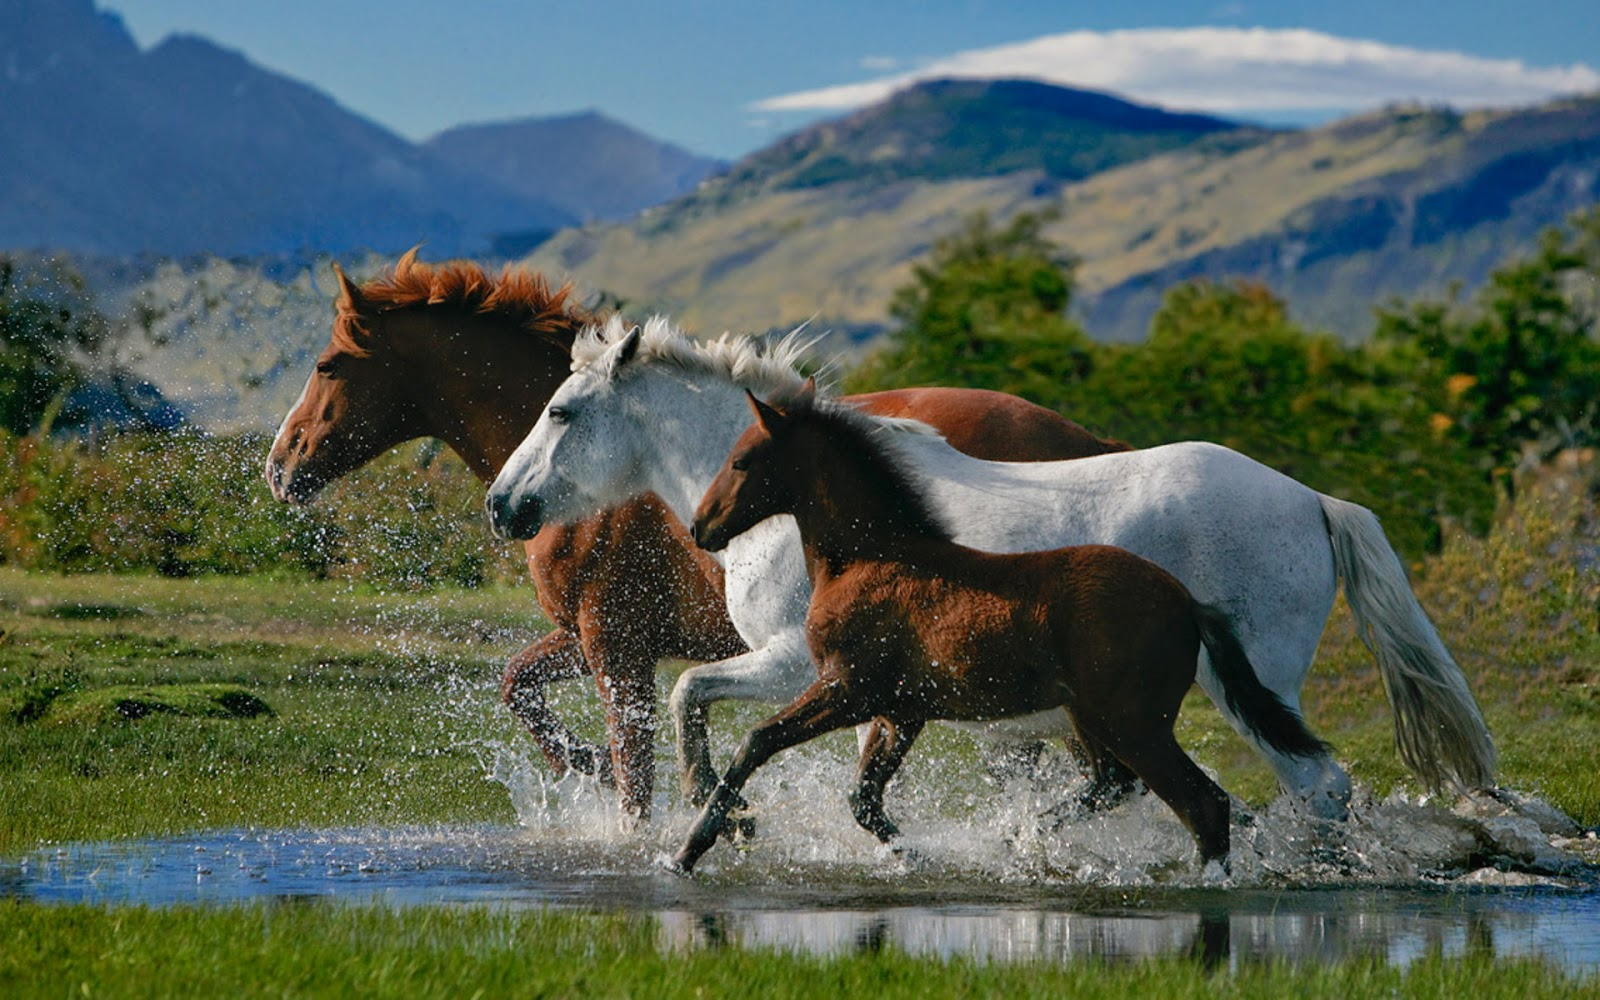 Loving Horses Wallpapers - Entertainment Only